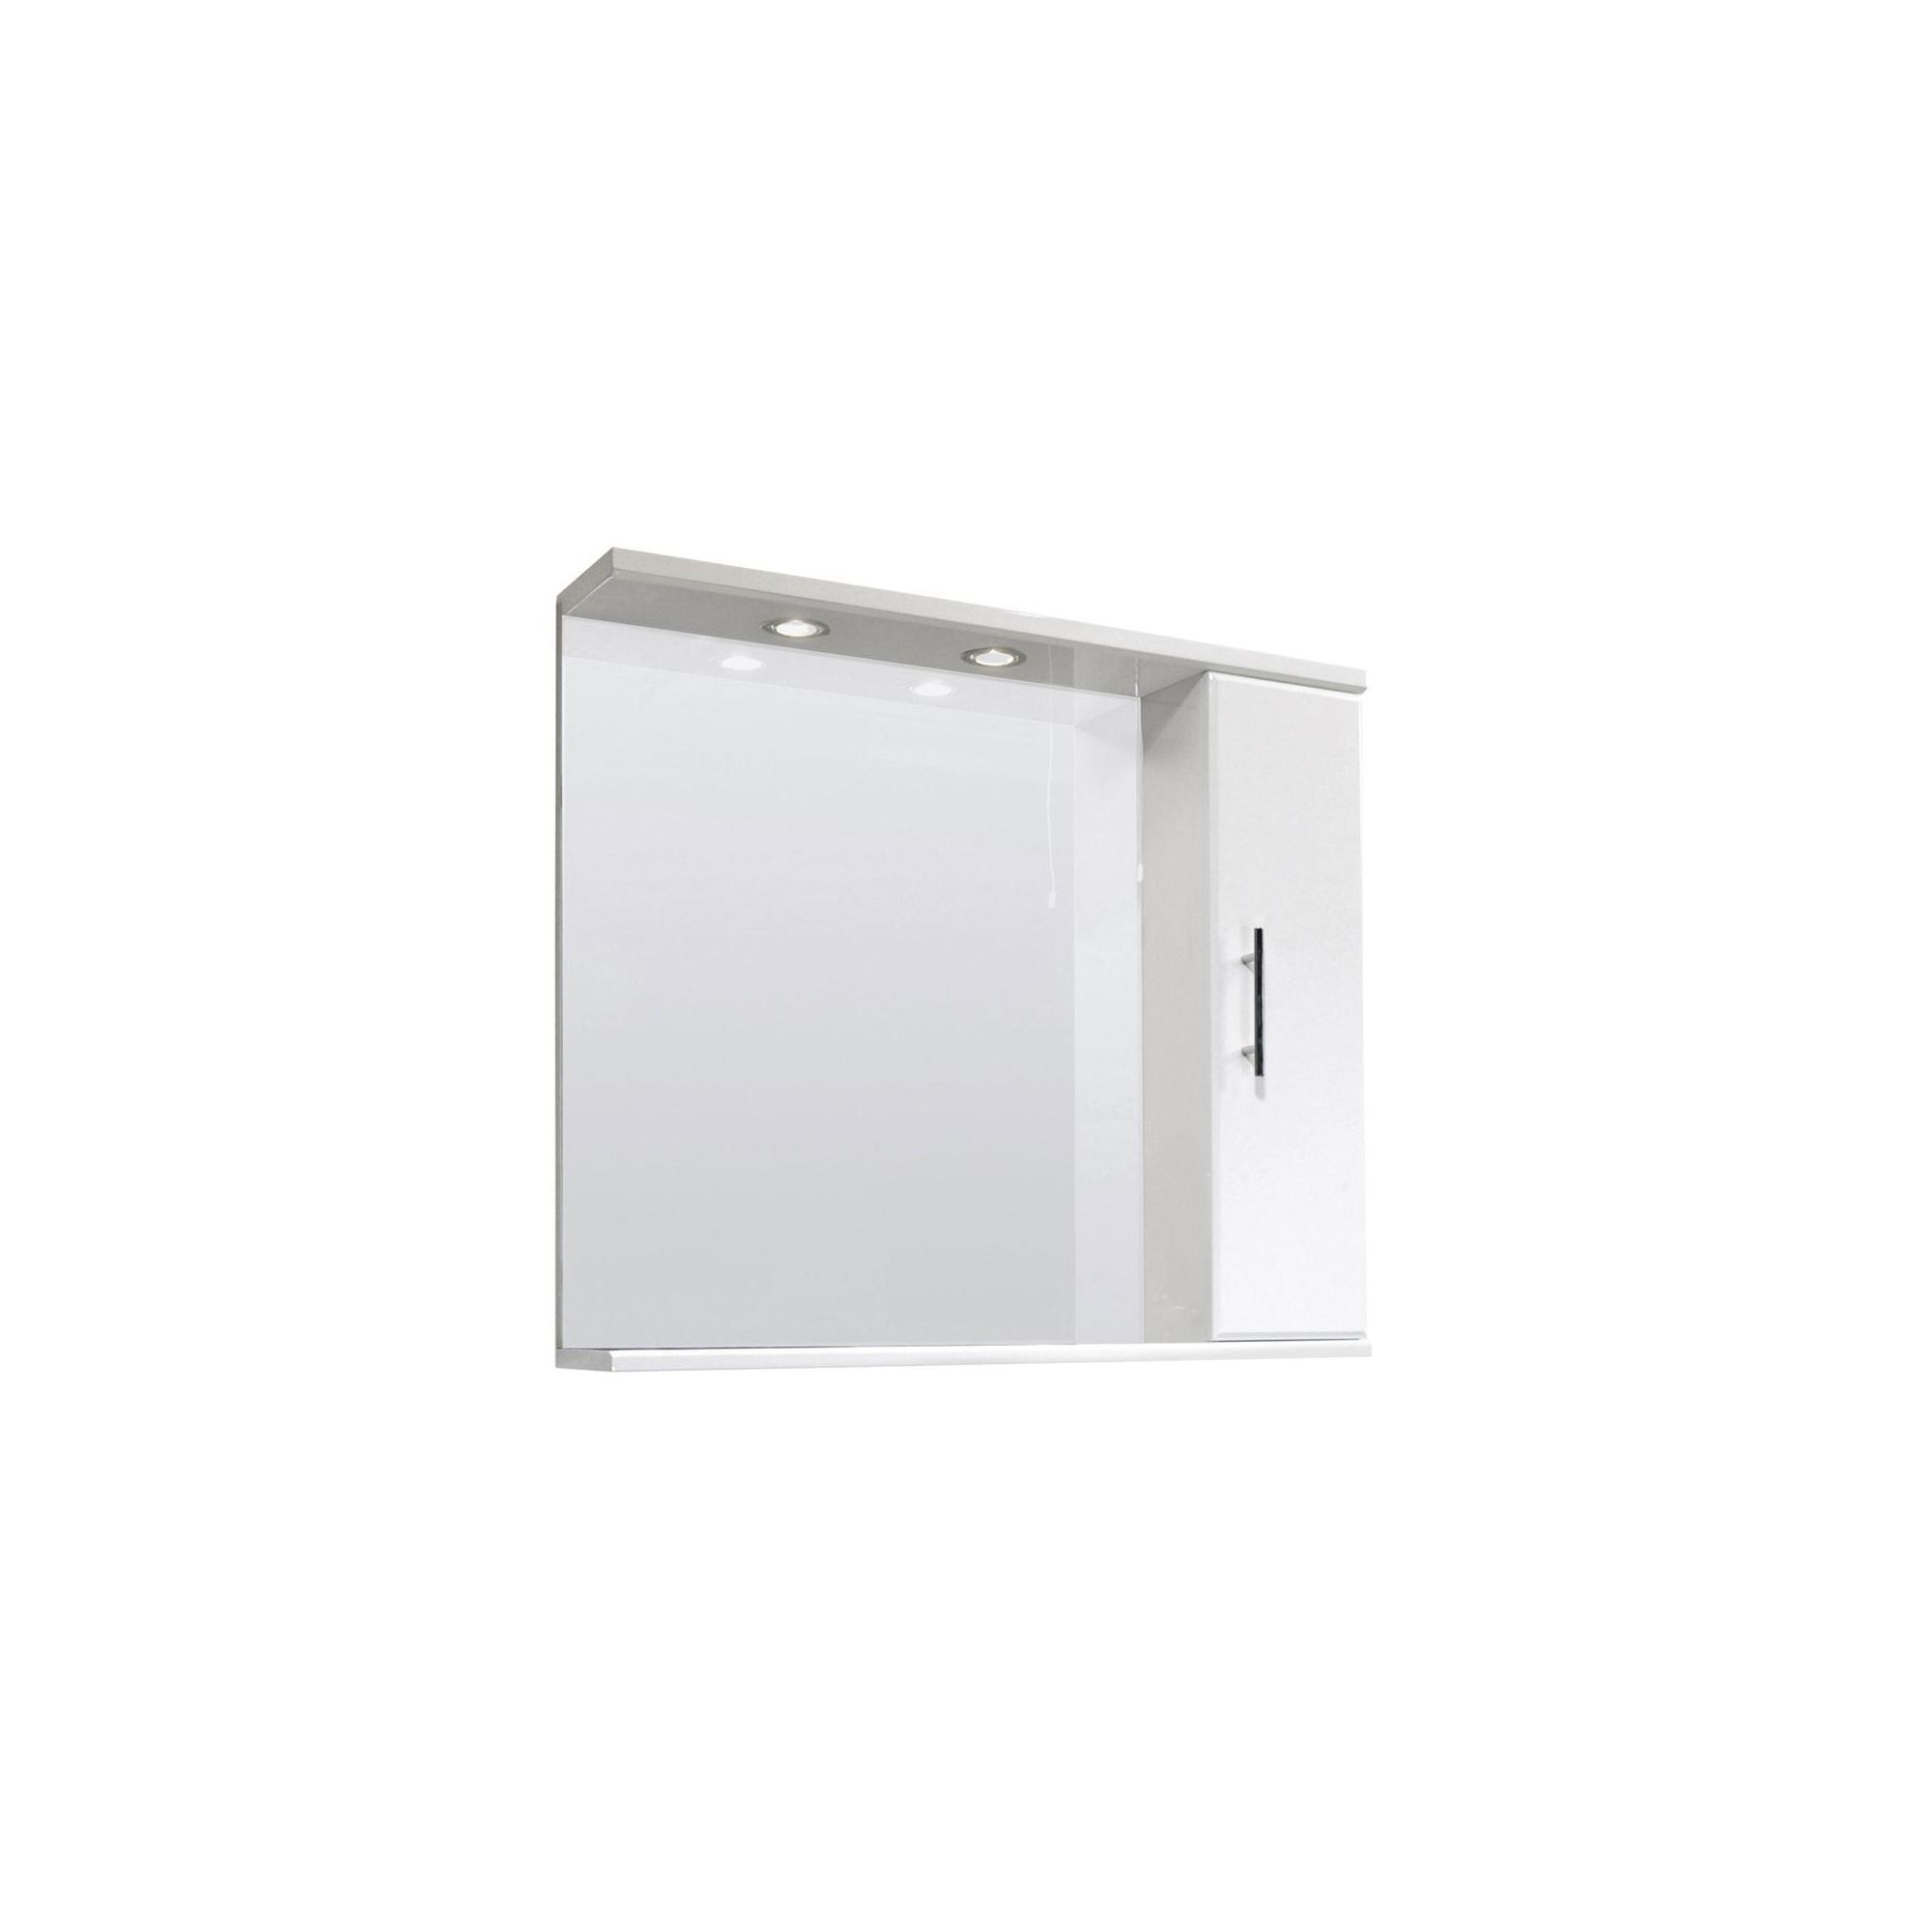 Premier Illuminated Mirror Vanity Cabinet 850mm High Gloss White